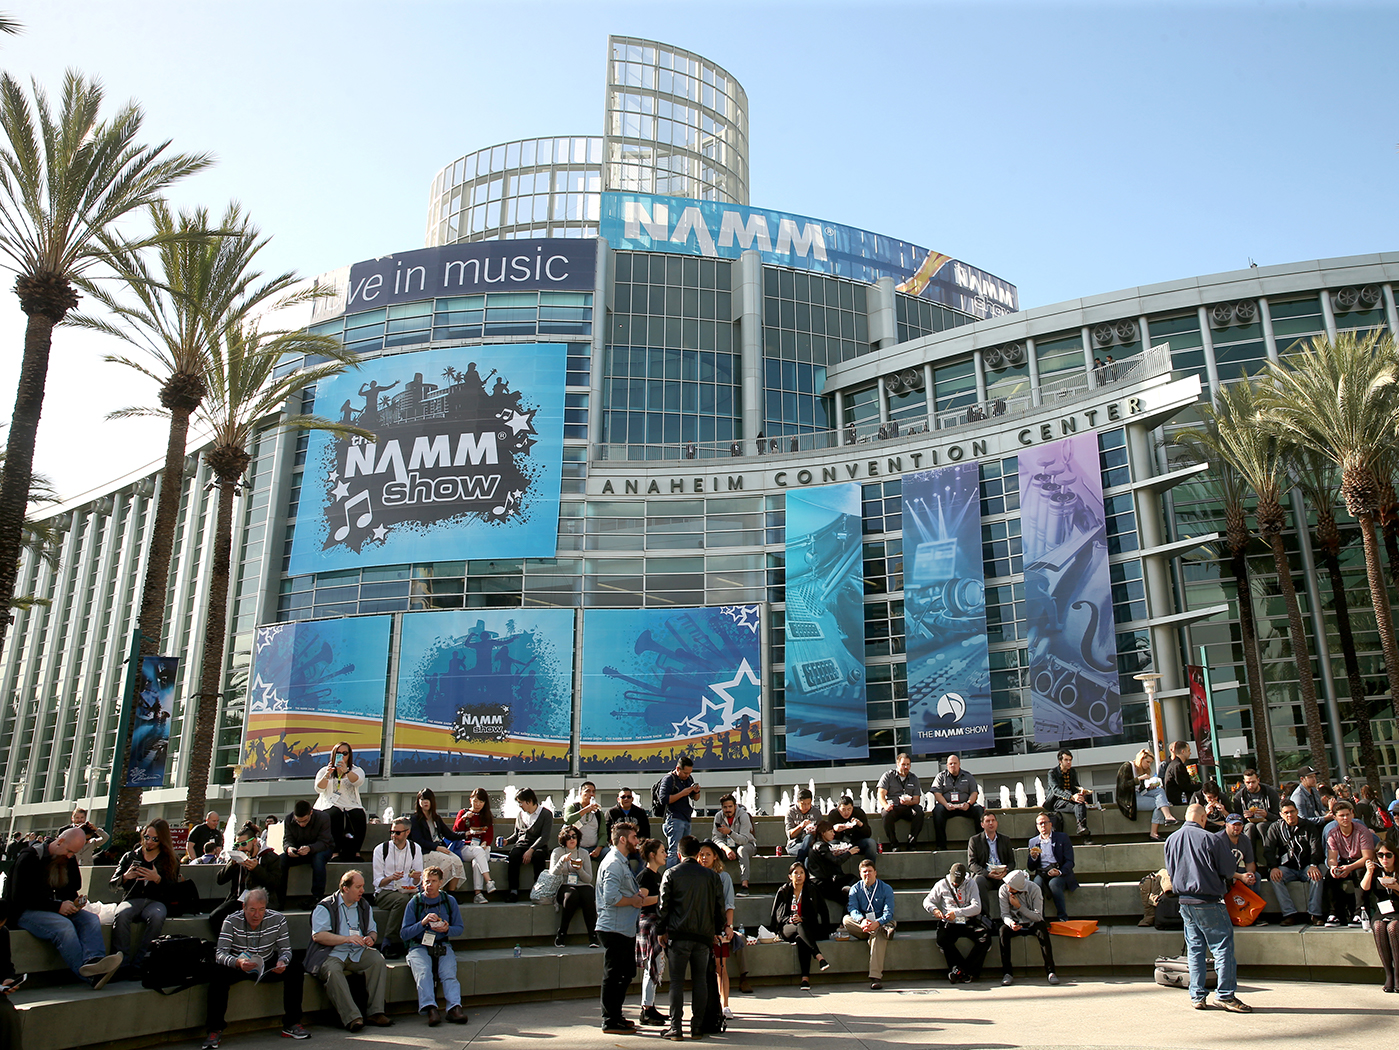 10 guitar things we'd like to see at Winter NAMM 2019